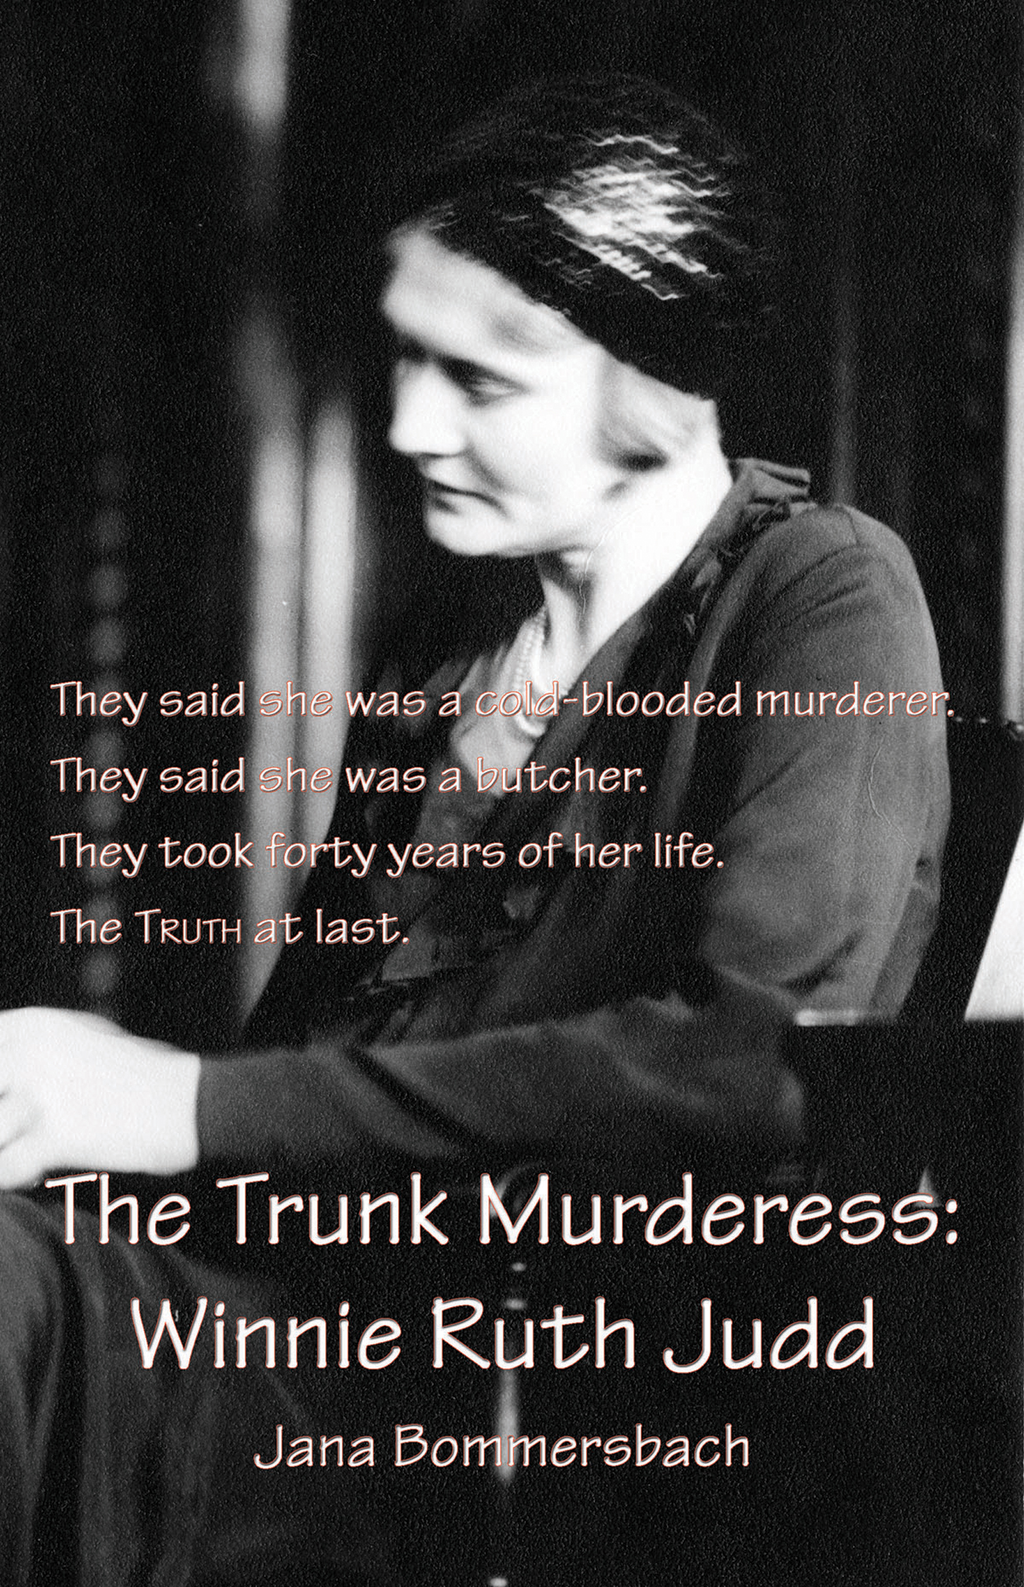 The Trunk Murderess By: Jana Bommersbach